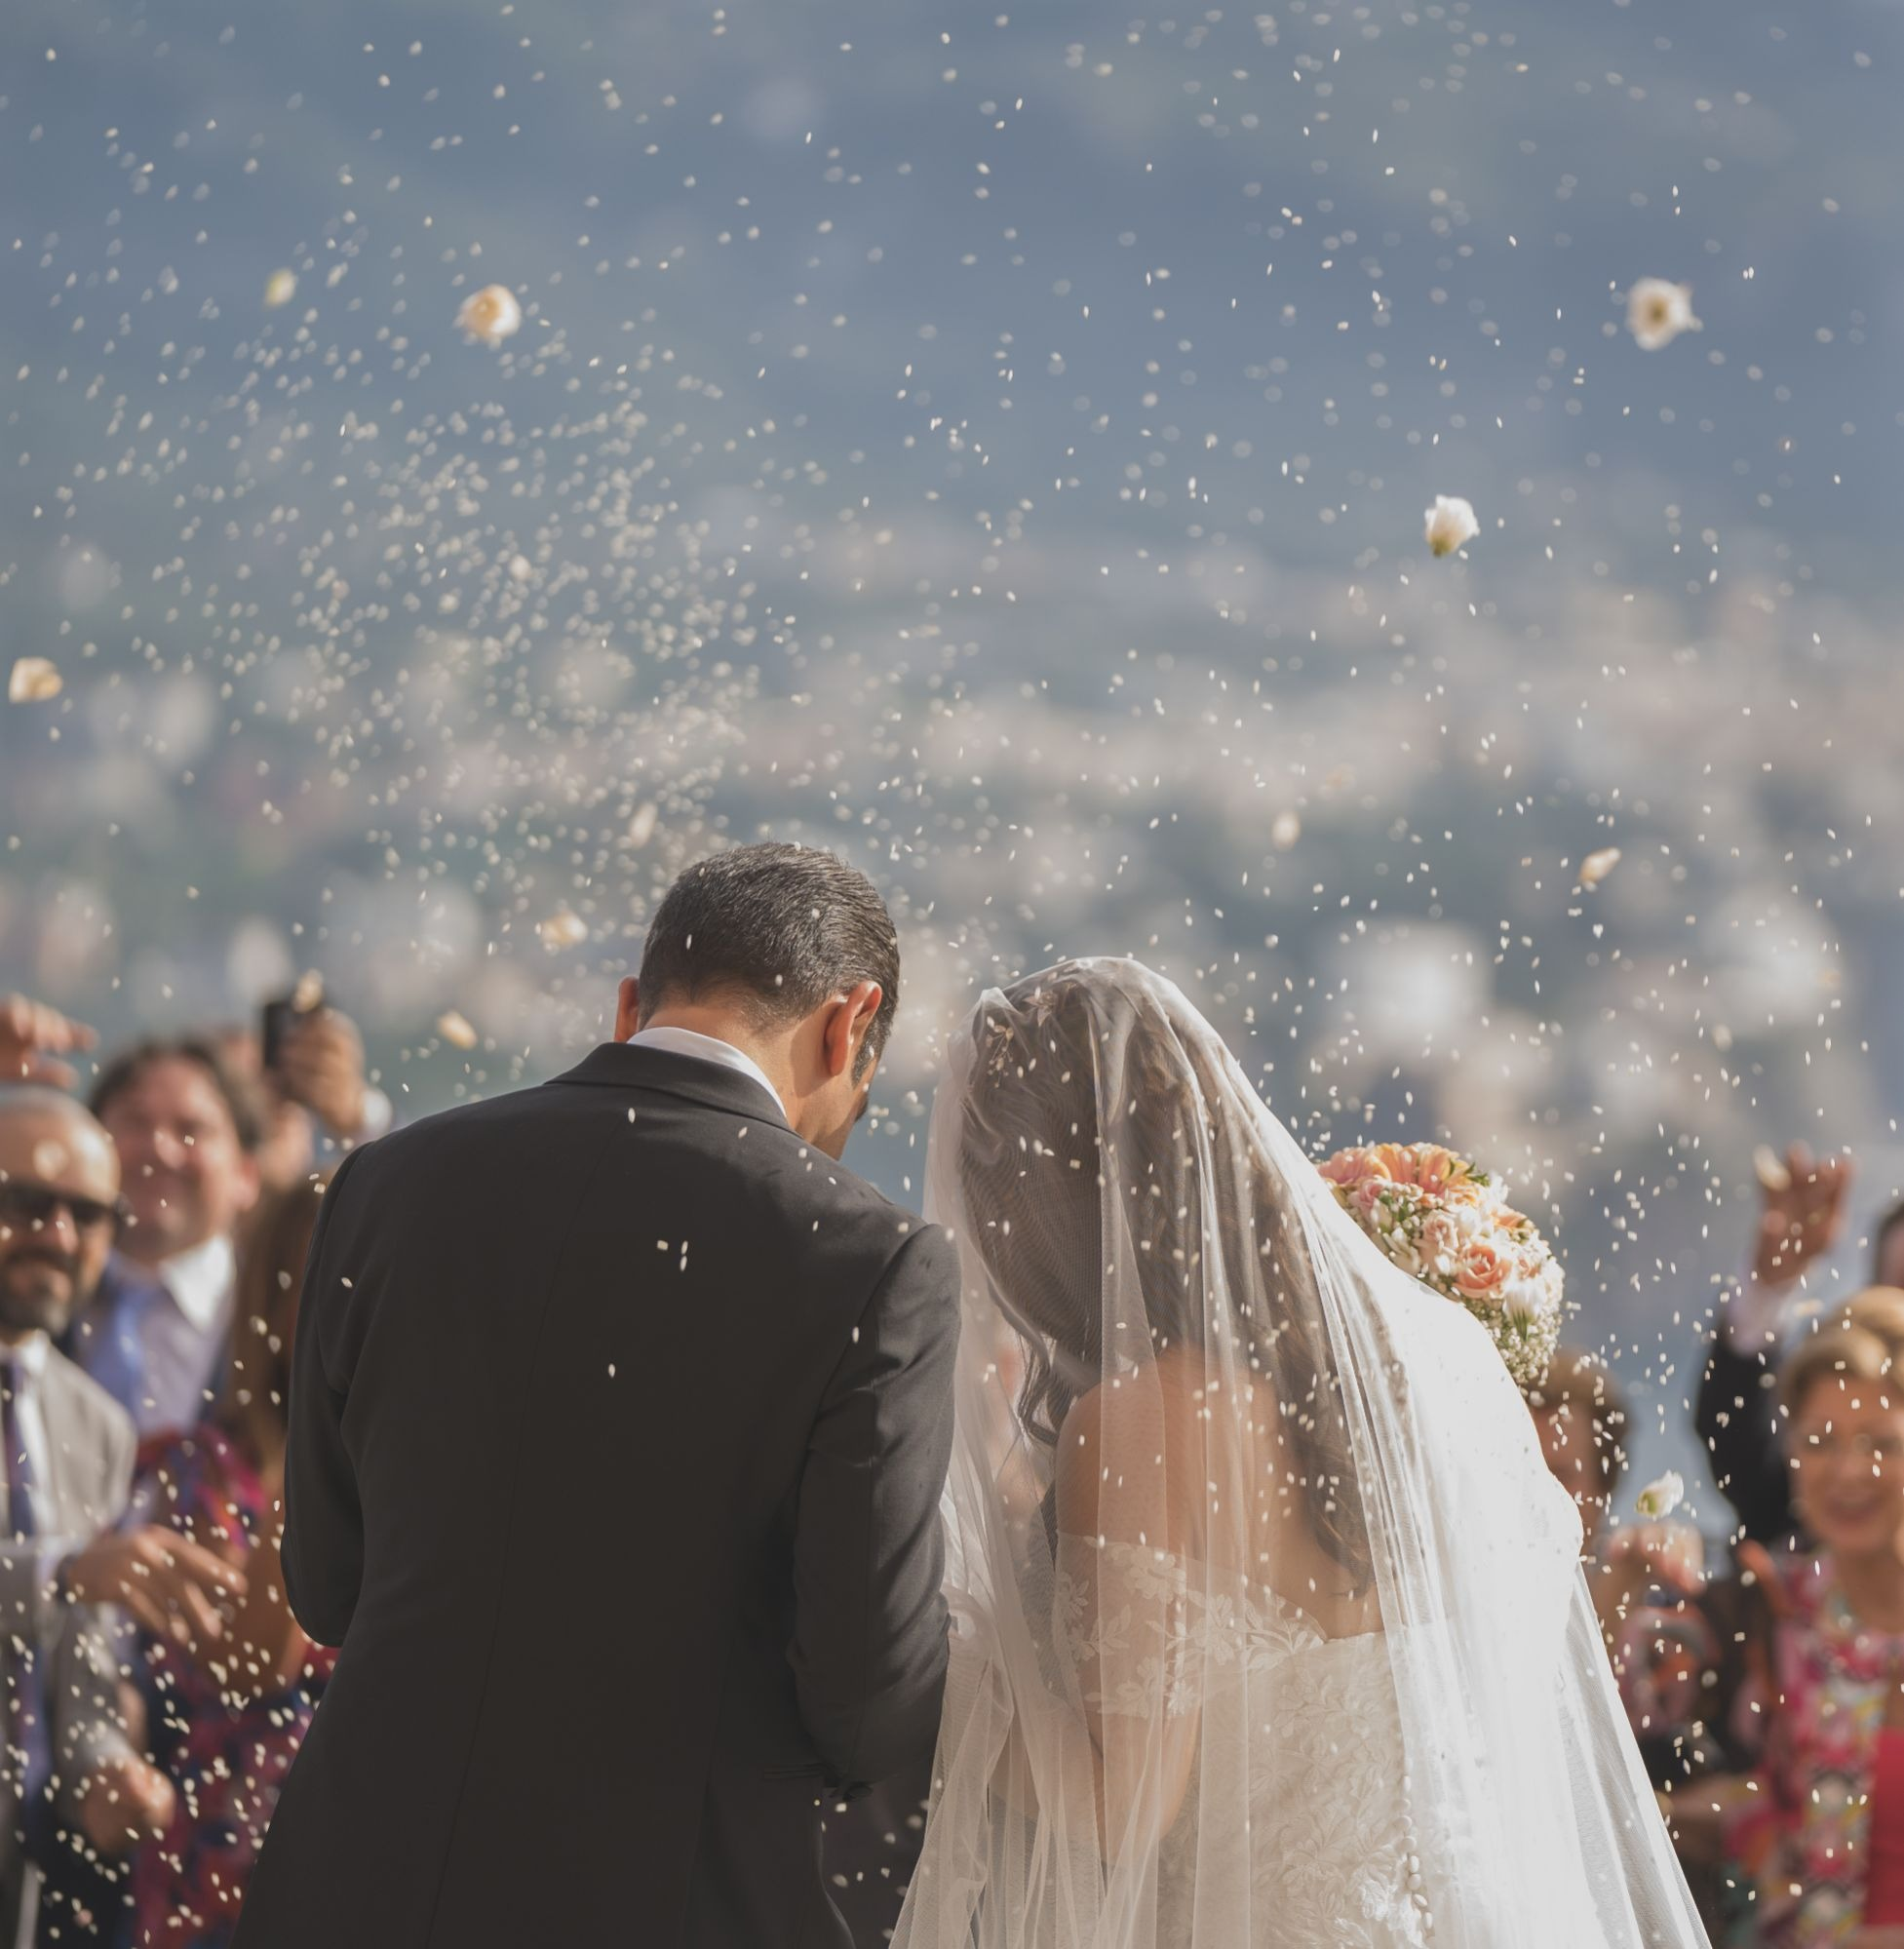 WEDDING IN CHURCH OF SANTA MARIA DELLE GRAZIE, VICO EQUENSE, SORRENTO COAST, ITALY